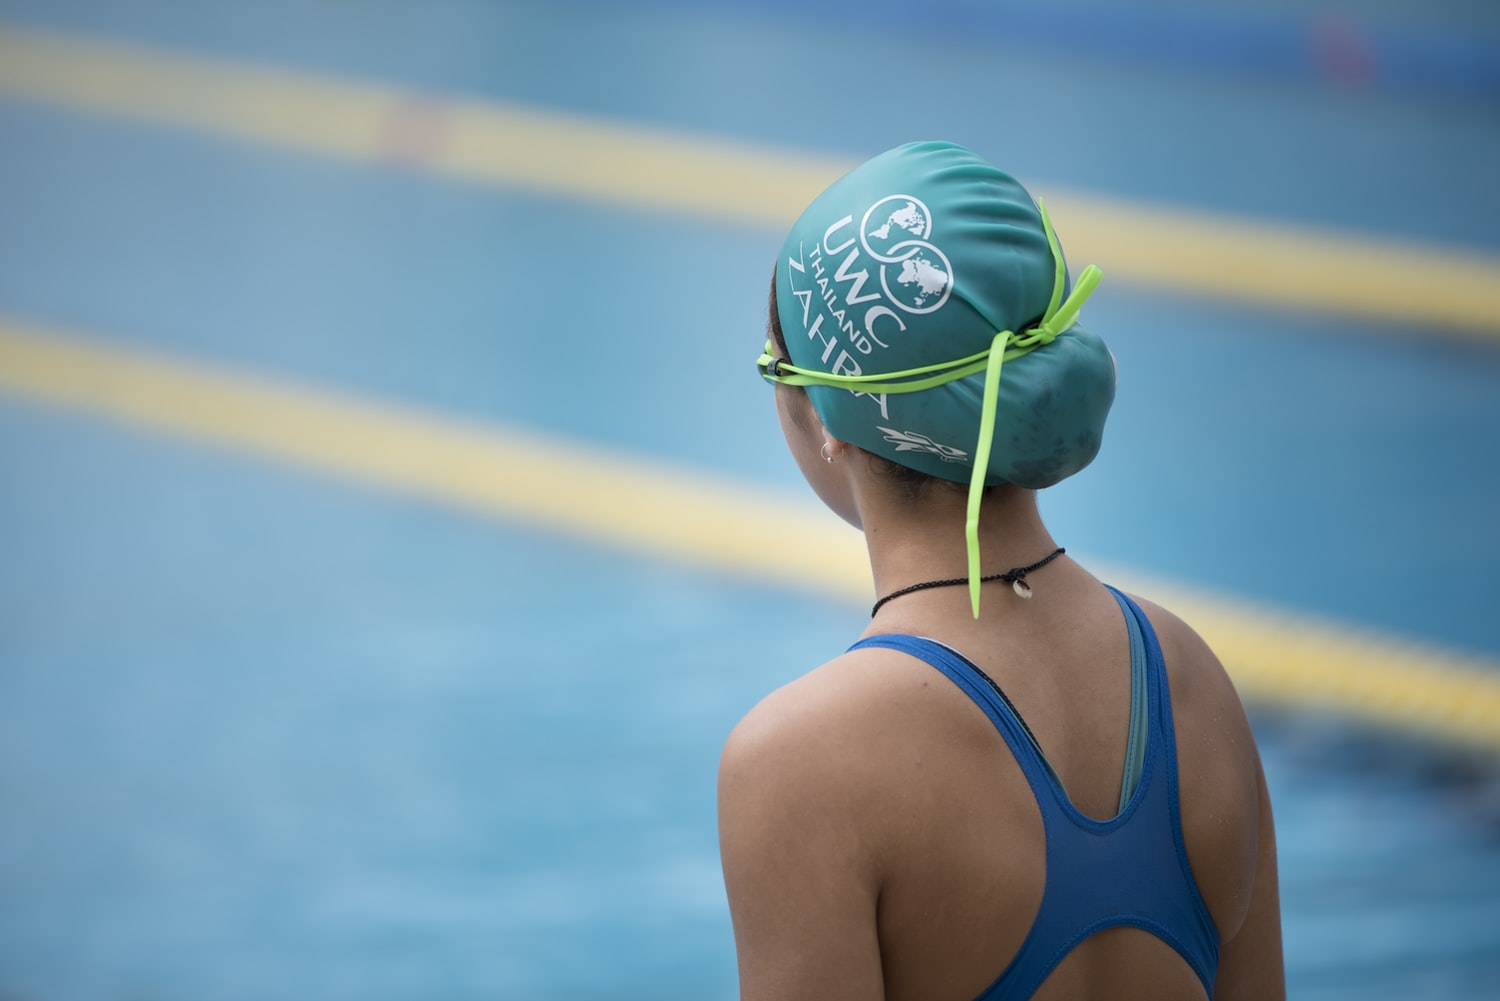 Woman in the swimming pool is wearing a goggles and swim cap